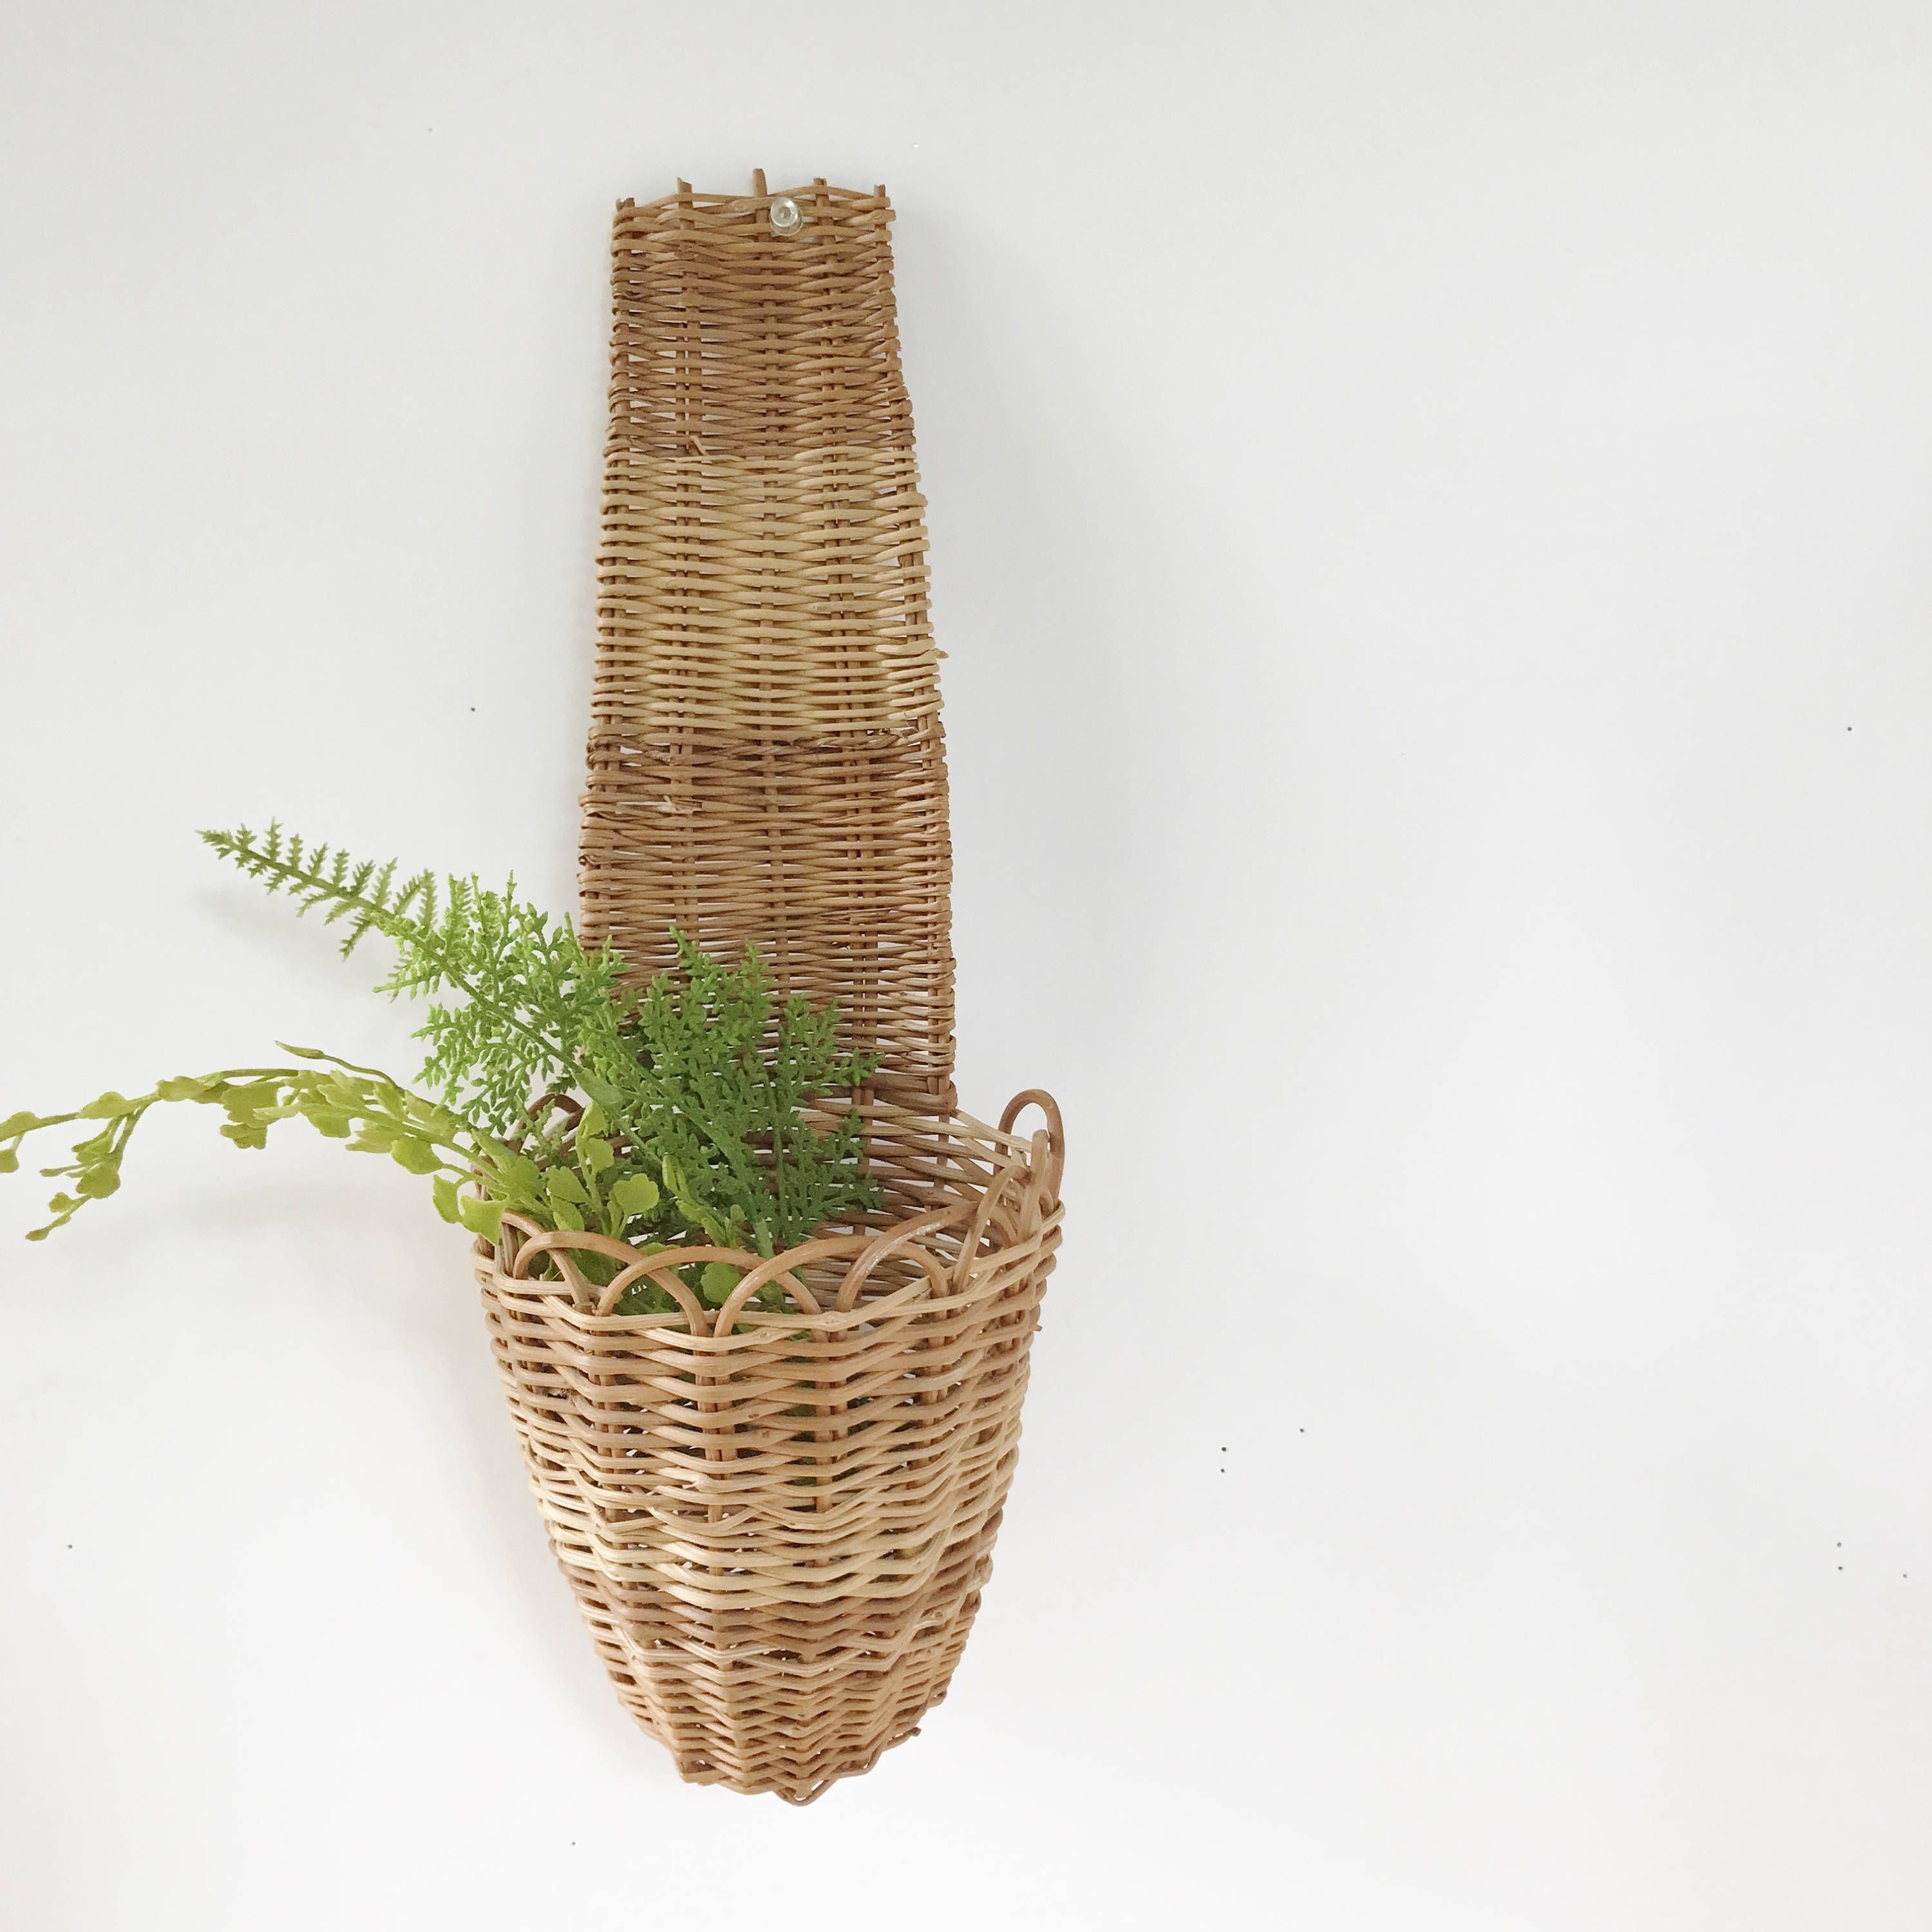 Vintage Woven Wicker Rattan Wall Basket Long Handle-Wall Pocket-Plant Flower